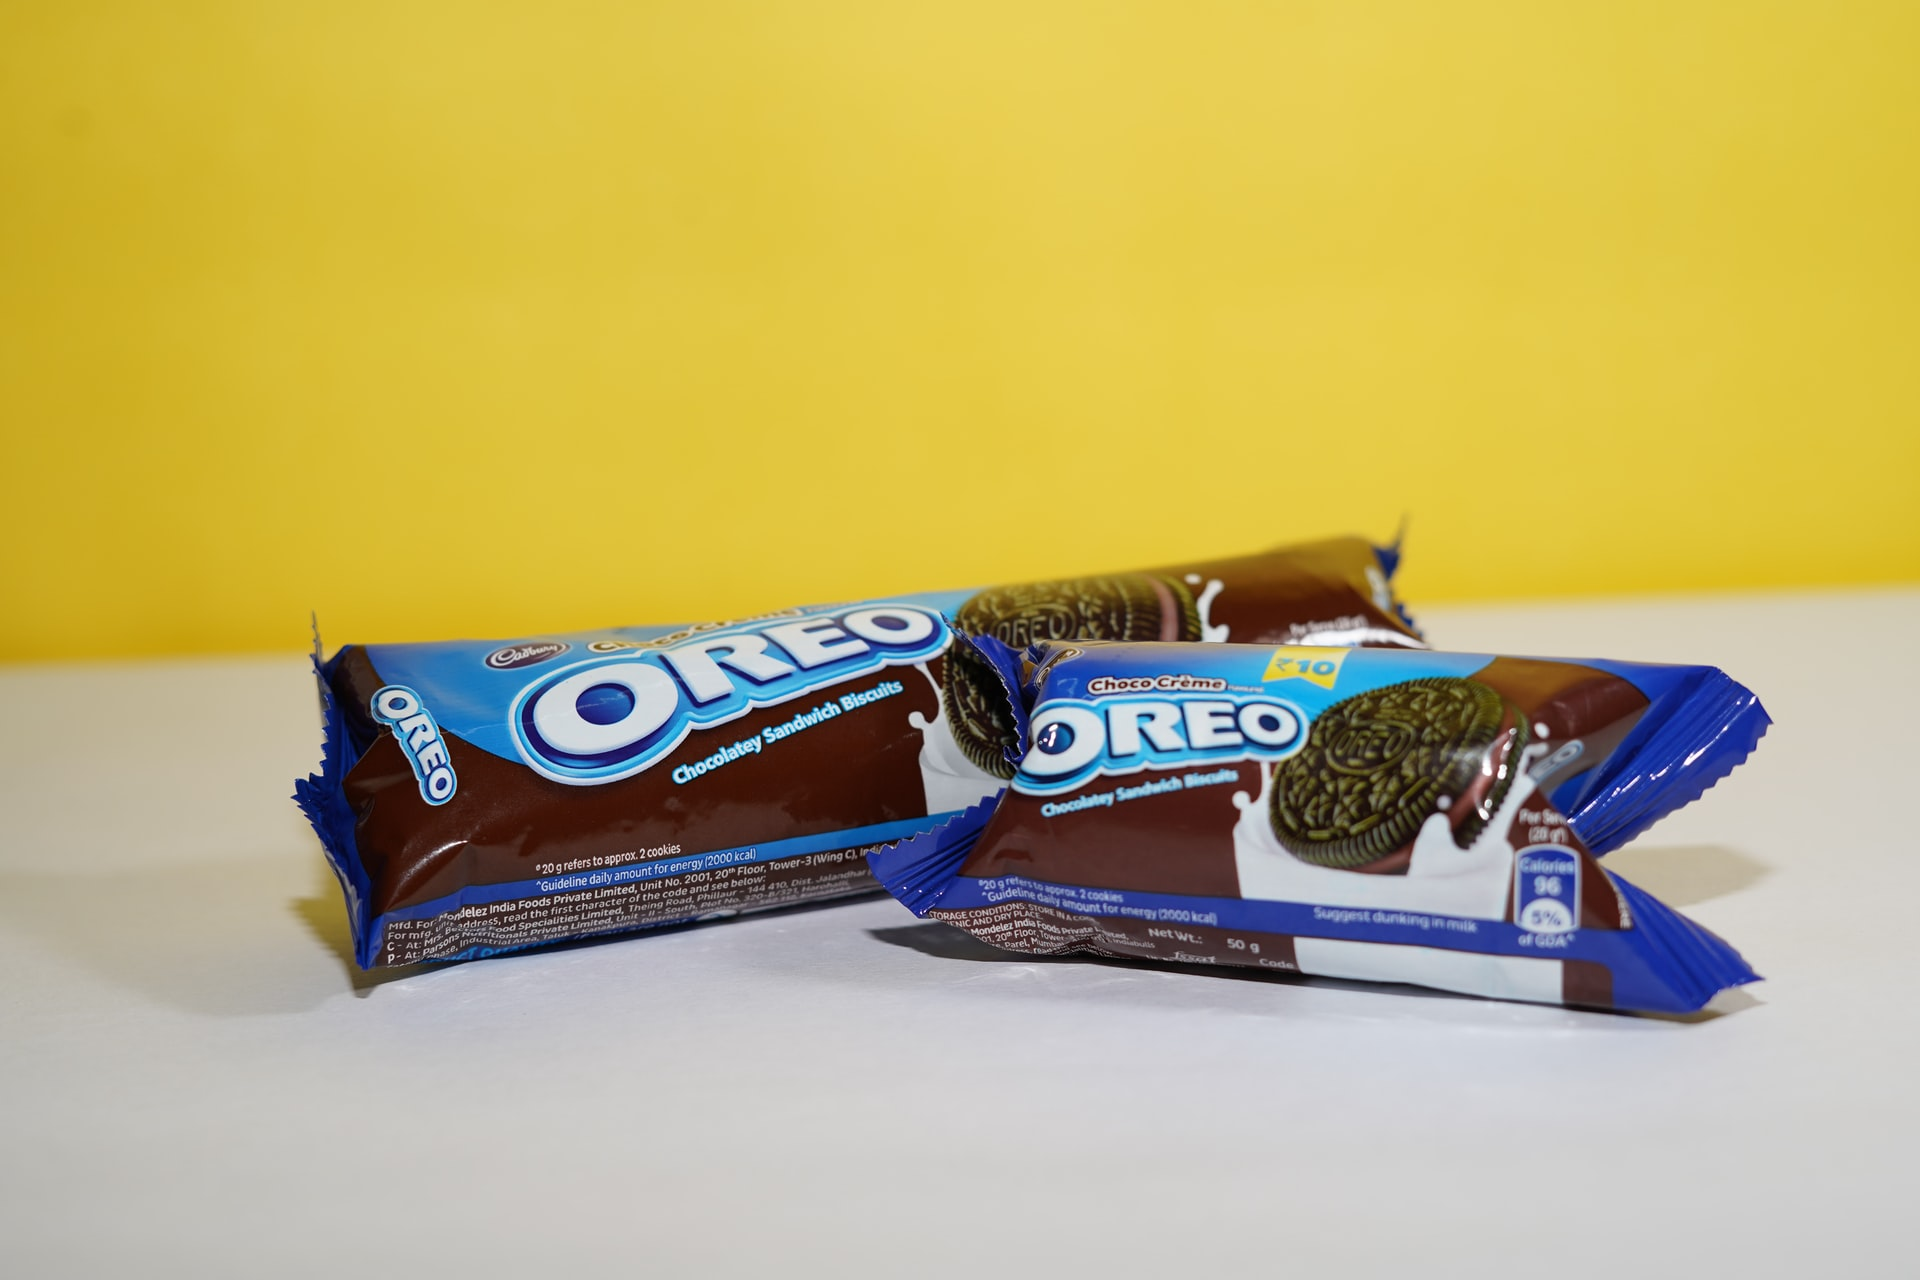 oreo cookies, 4 letter brand